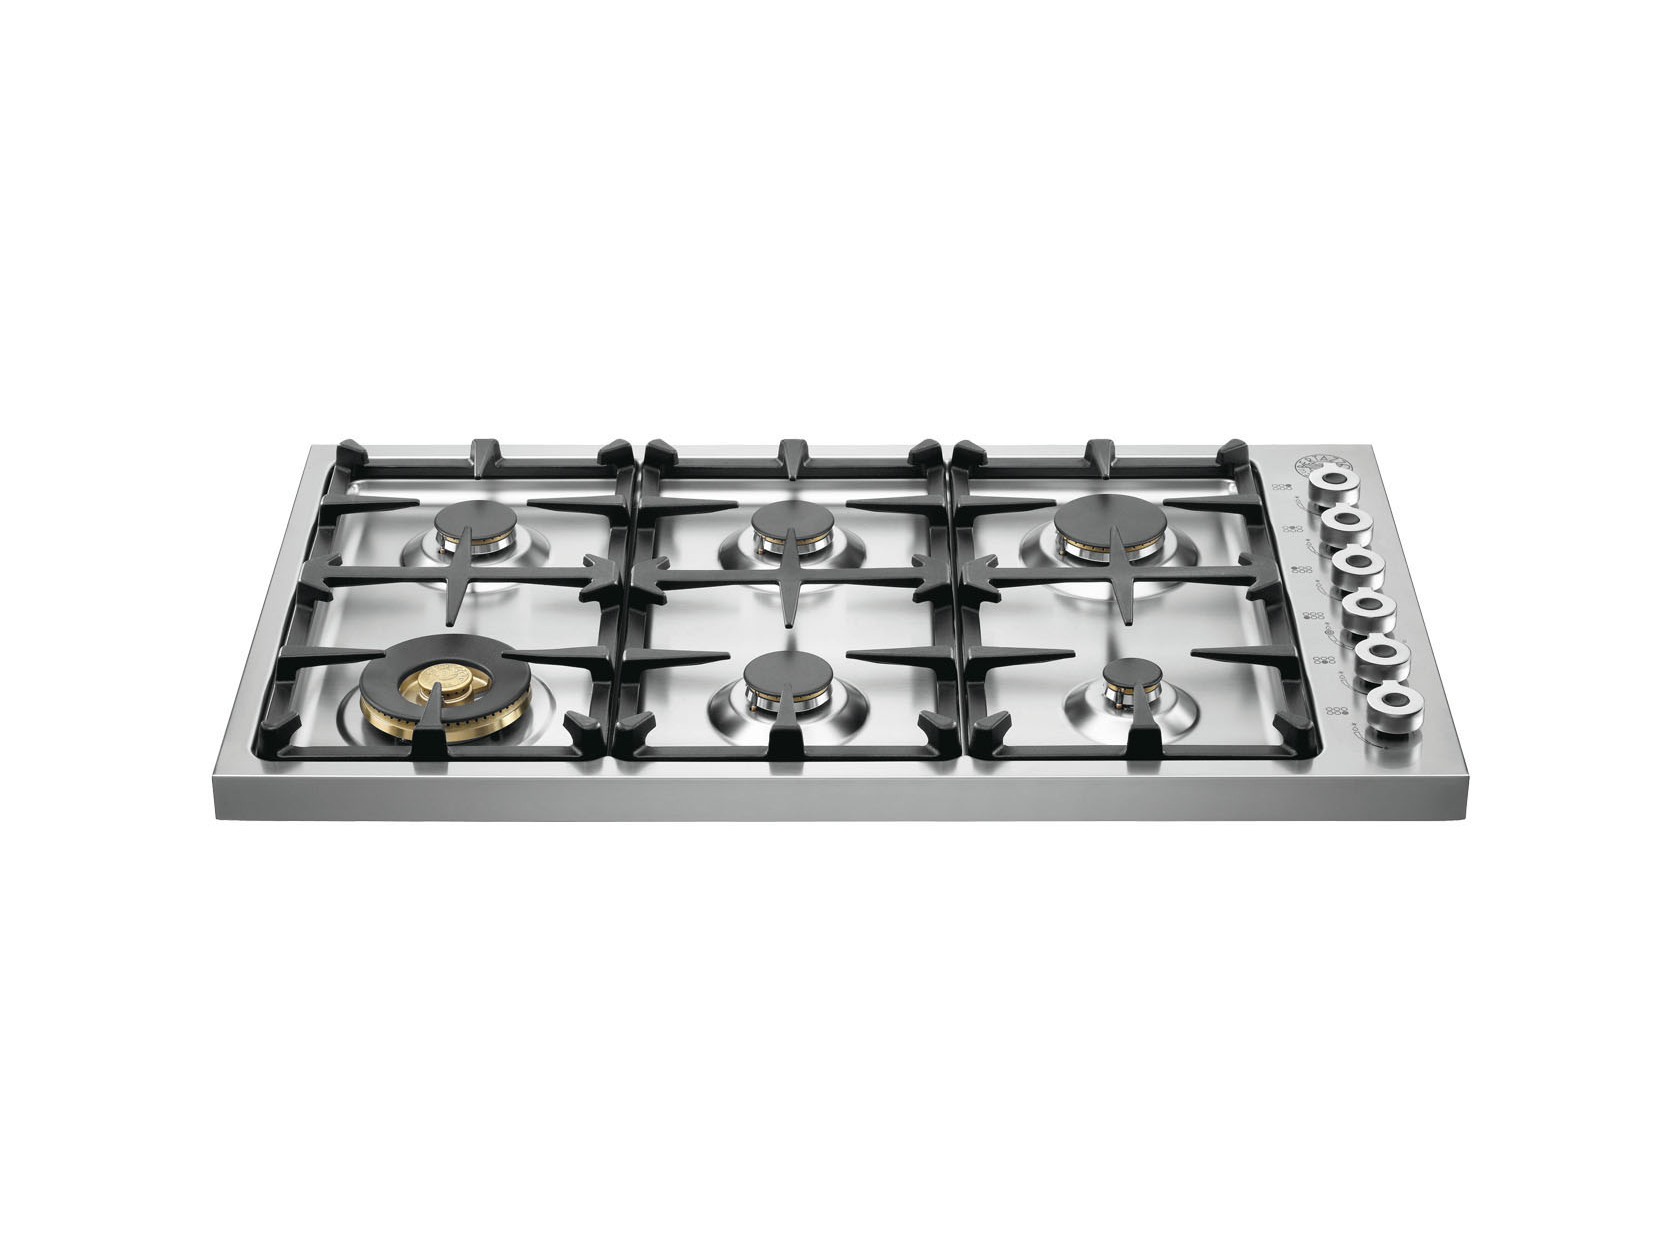 92 6-burner hob, edge 40mm | Bertazzoni - Stainless